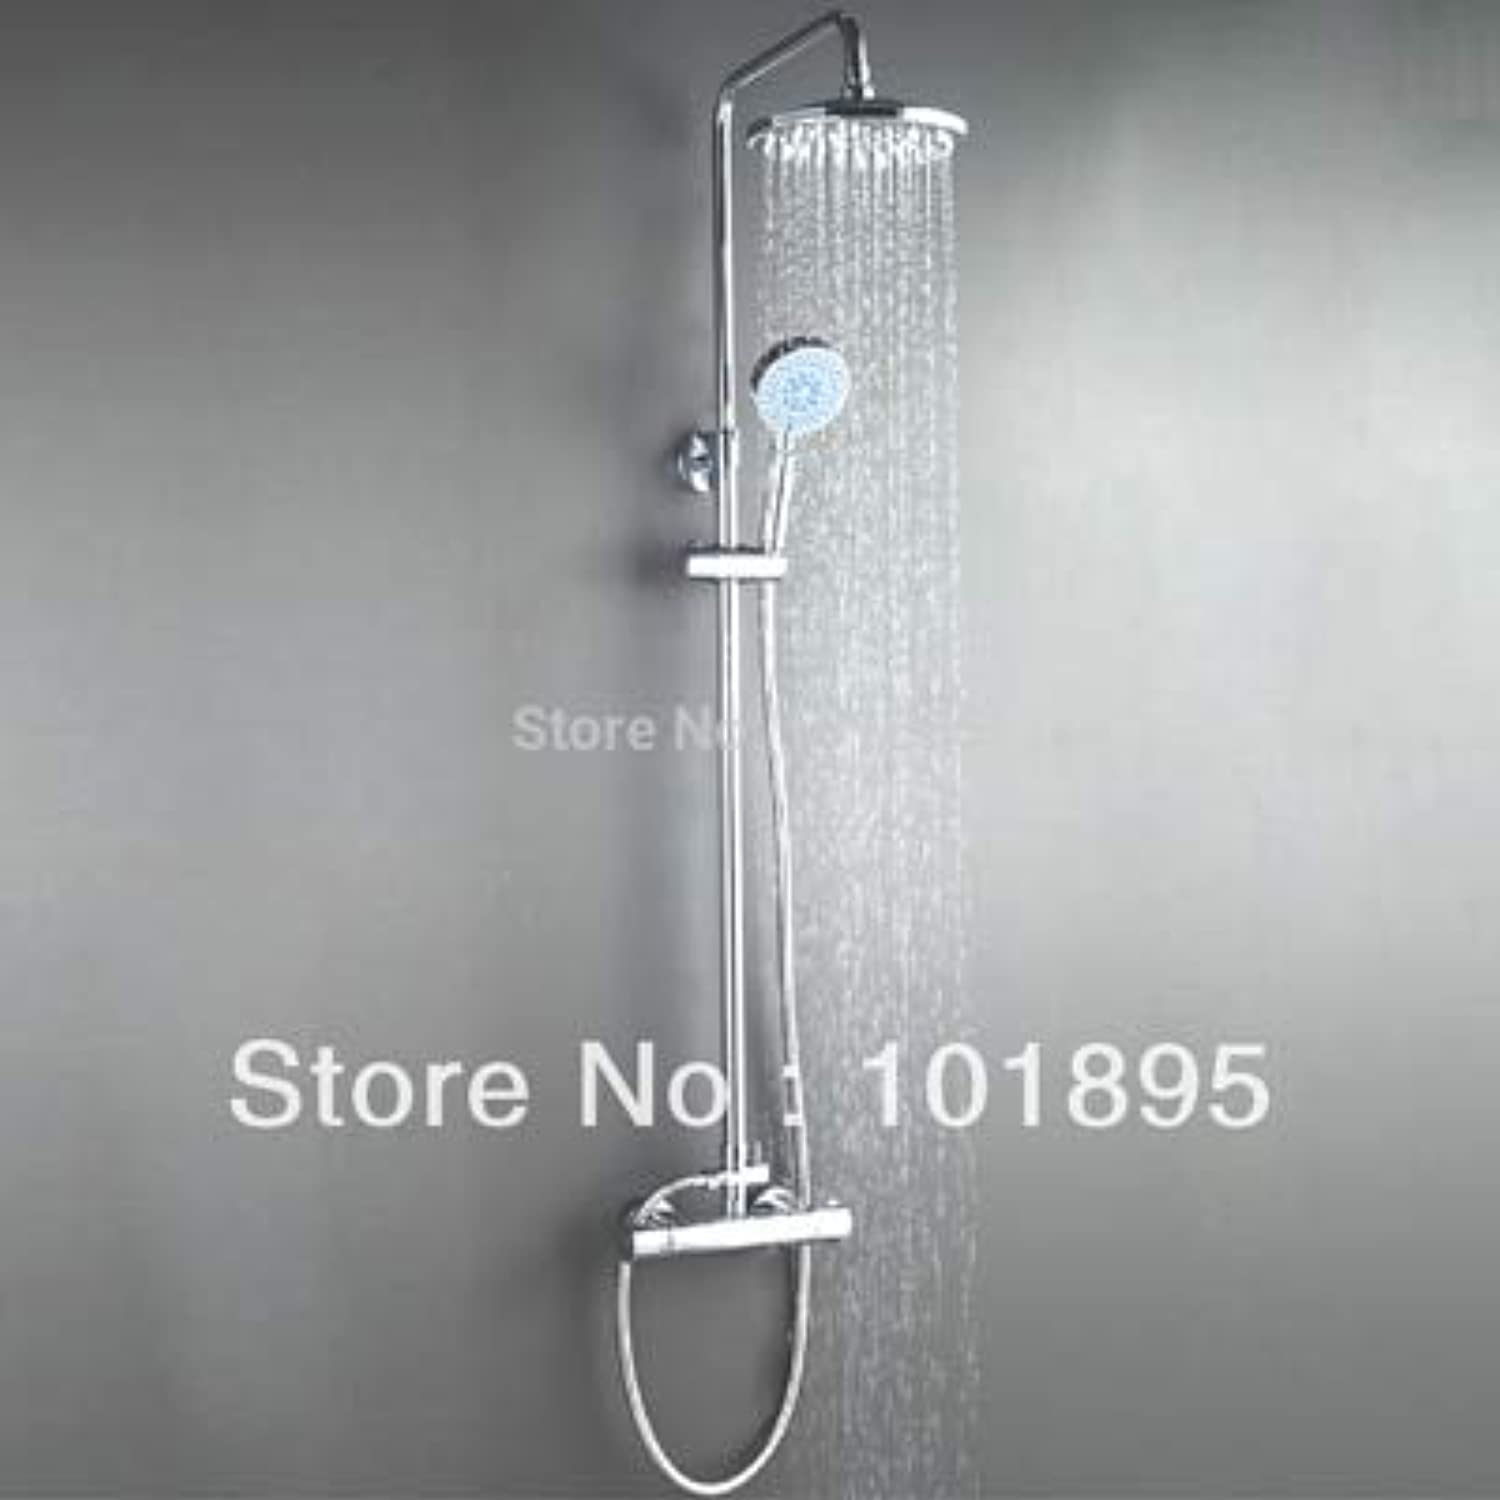 Retail - Luxury Brass Shower Set with Thermostatic Shower Mixer, Chrome Finish, Overhead Rain Shower, Free Shipping X9026SS2,Light grau